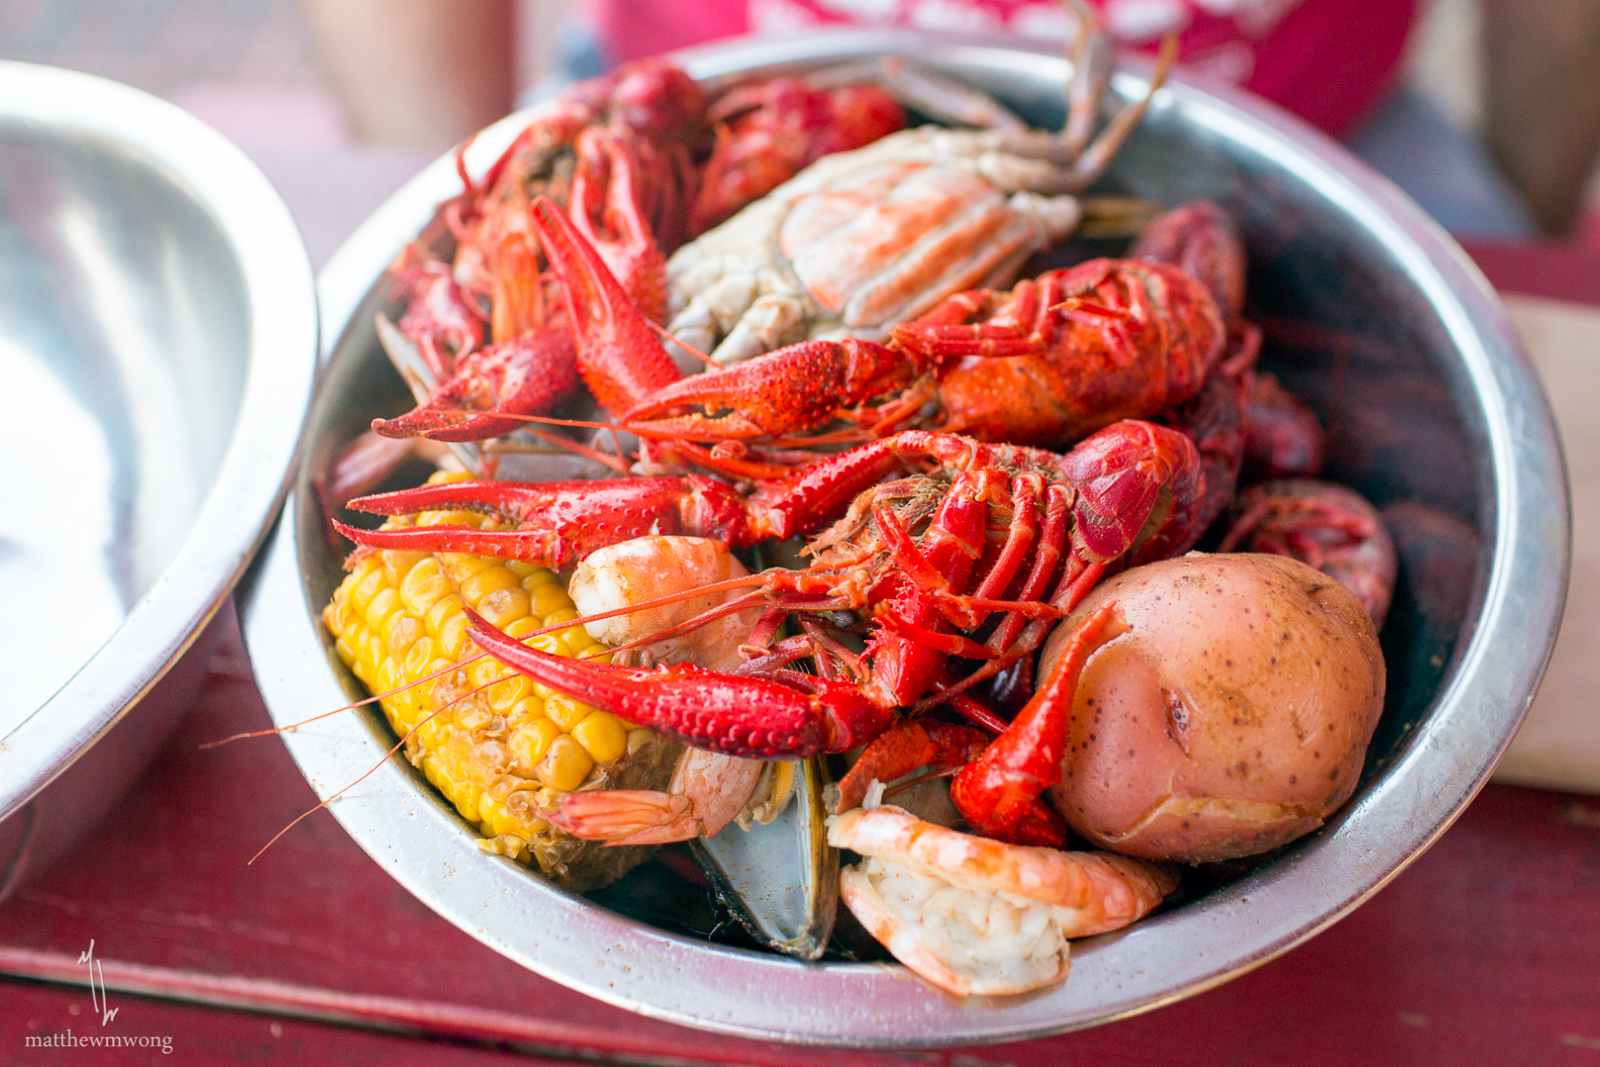 Shack-tastic Platter for one - boiled Snow Crab, Blue Crab, Mussel, Shrimp, Corn and Red Potatoes